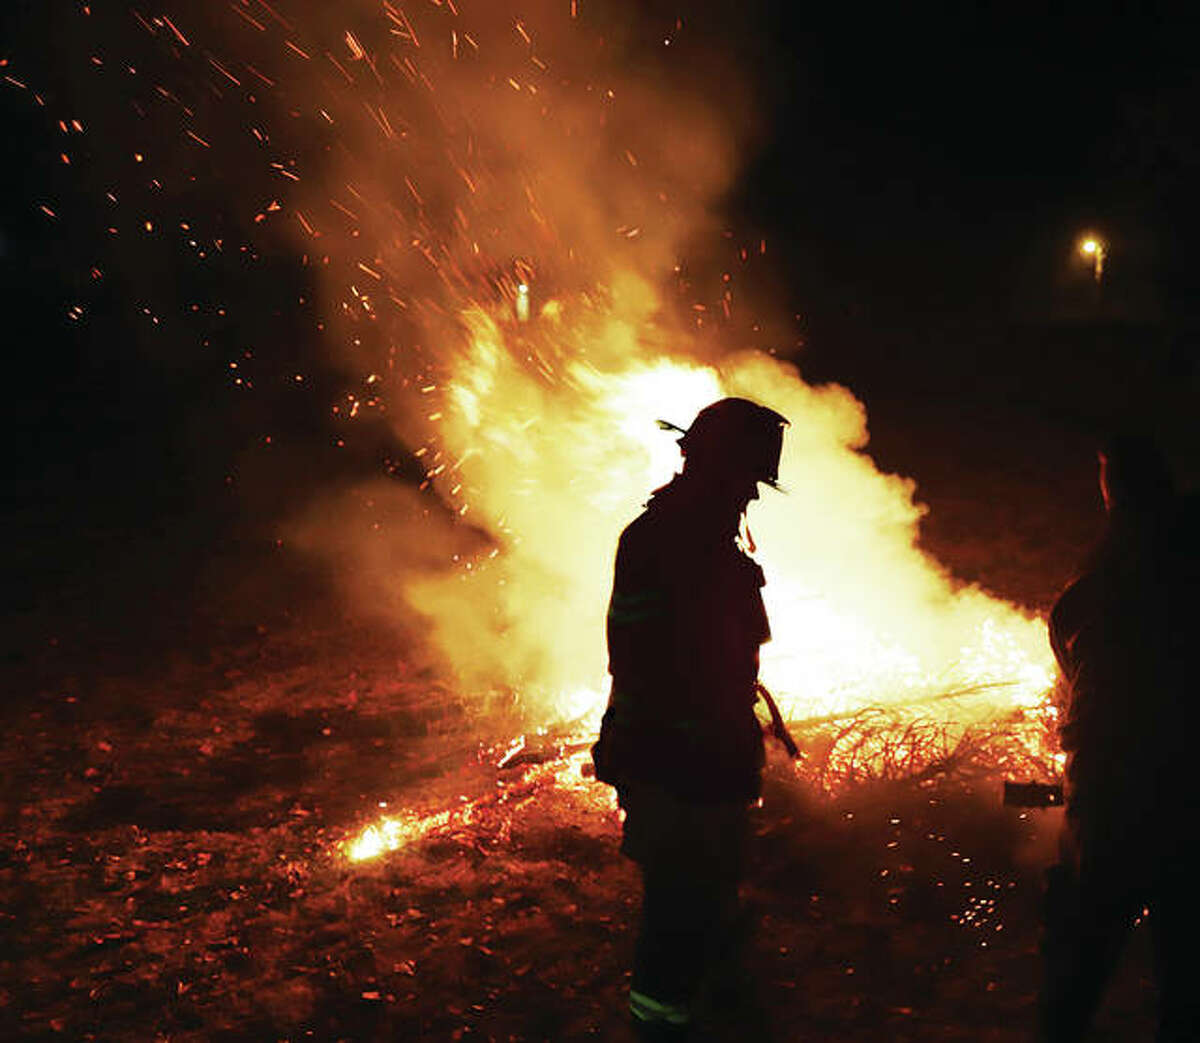 An Alton firefighter walks past a pile of burning Christmas trees Wednesday night in the Cousley Sunken Gardens adjacent to Riverview Park. The tree burning was a Twelfth Night tradition and about 50 neighborhood residents turned out to watch. Residents at the sunken garden maintained social distancing for the event.